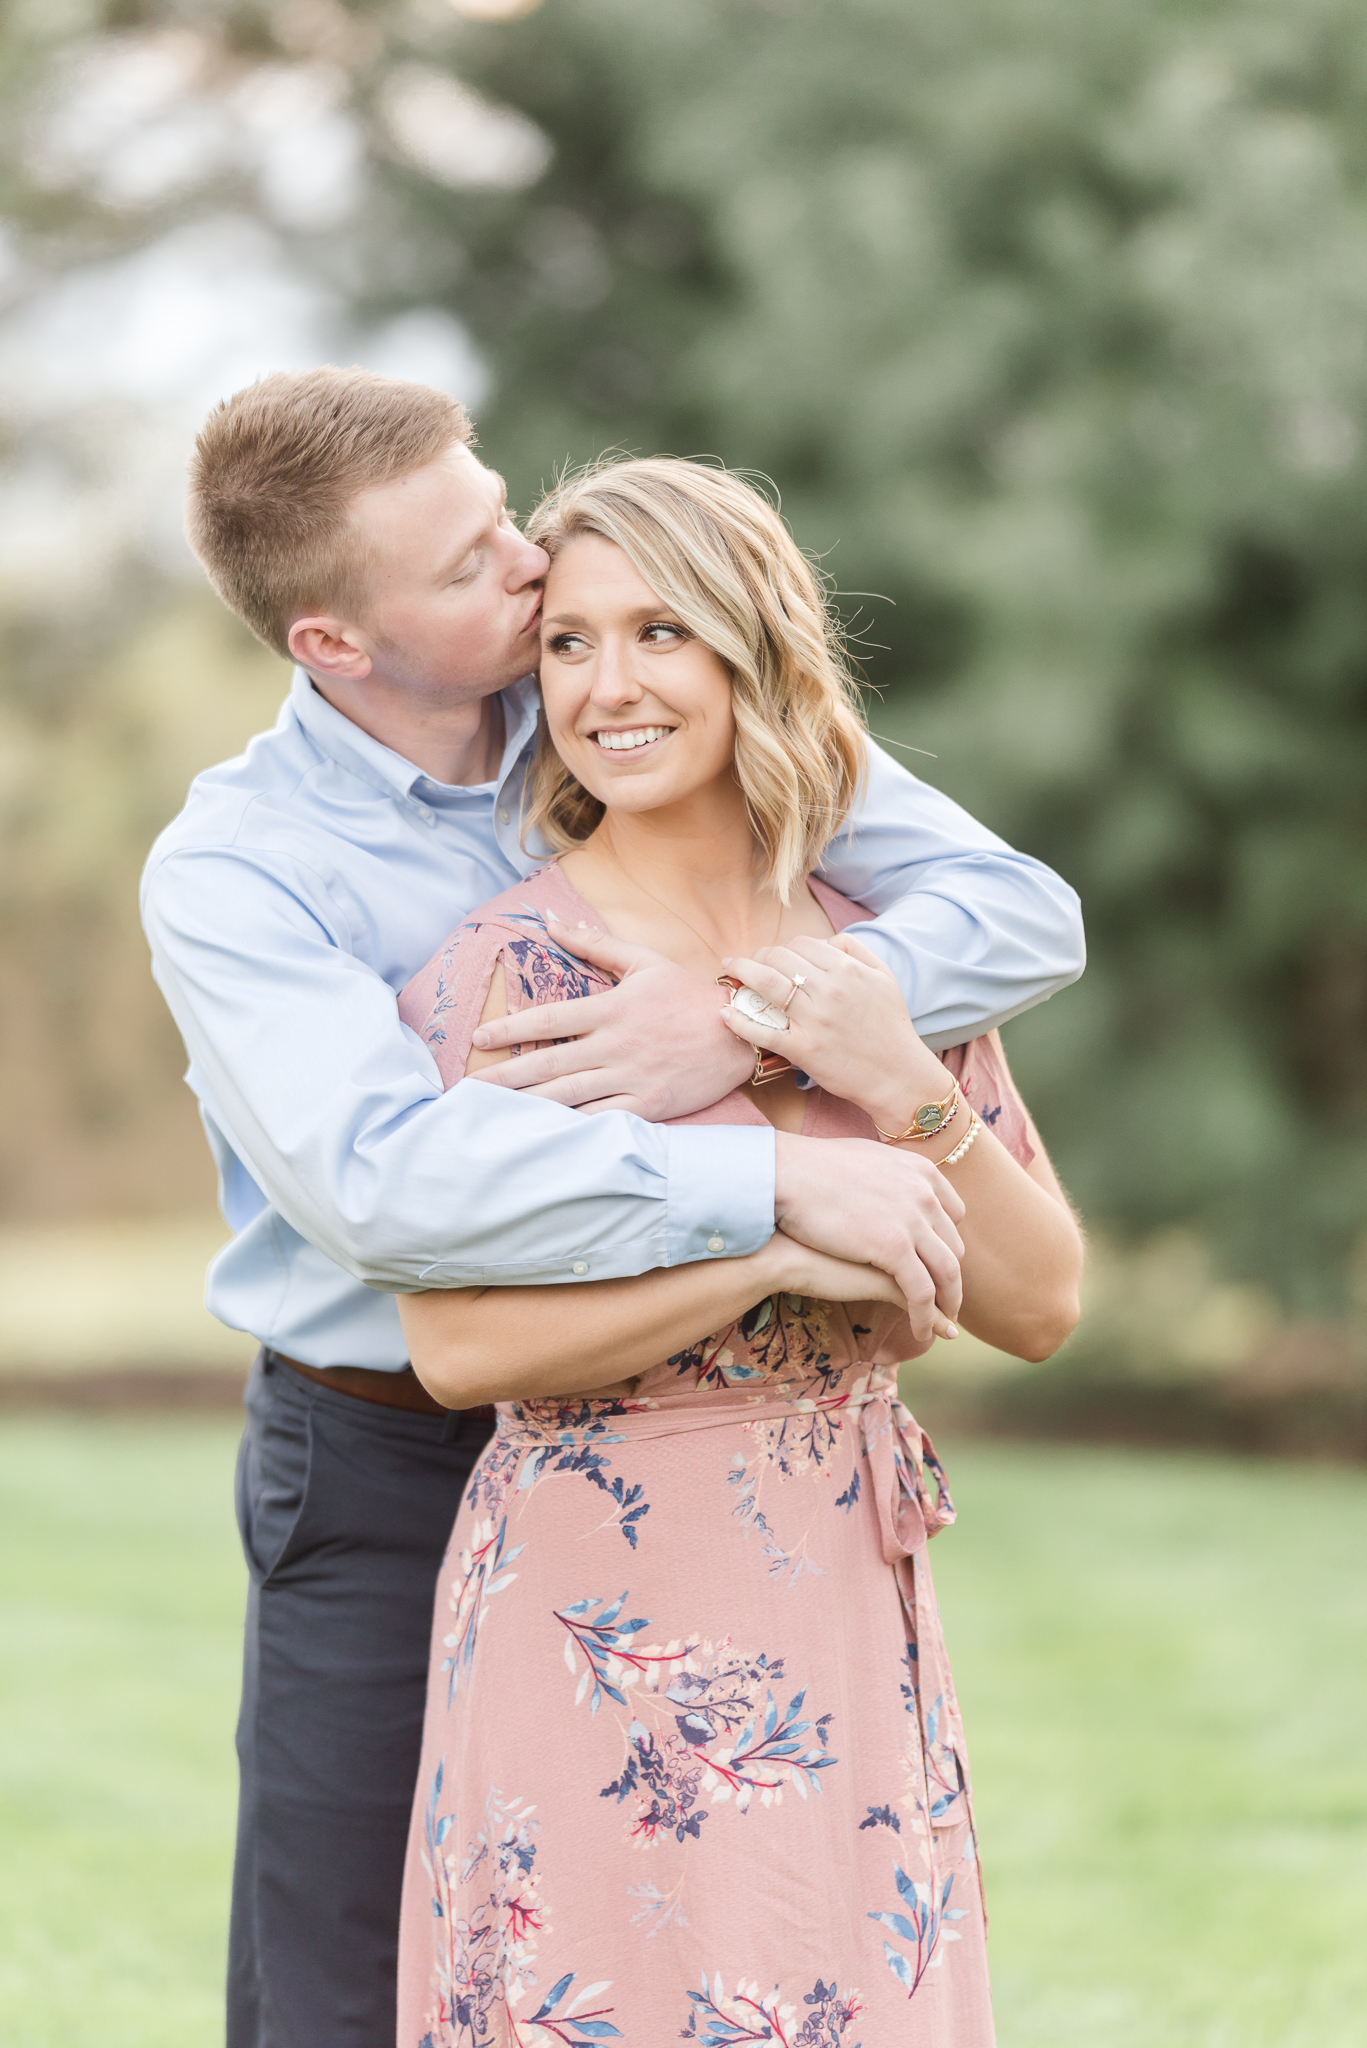 Richie Woods Nature Preserve and Mustard Seed Gardens Engagement Session Wedding Photos-56.jpg